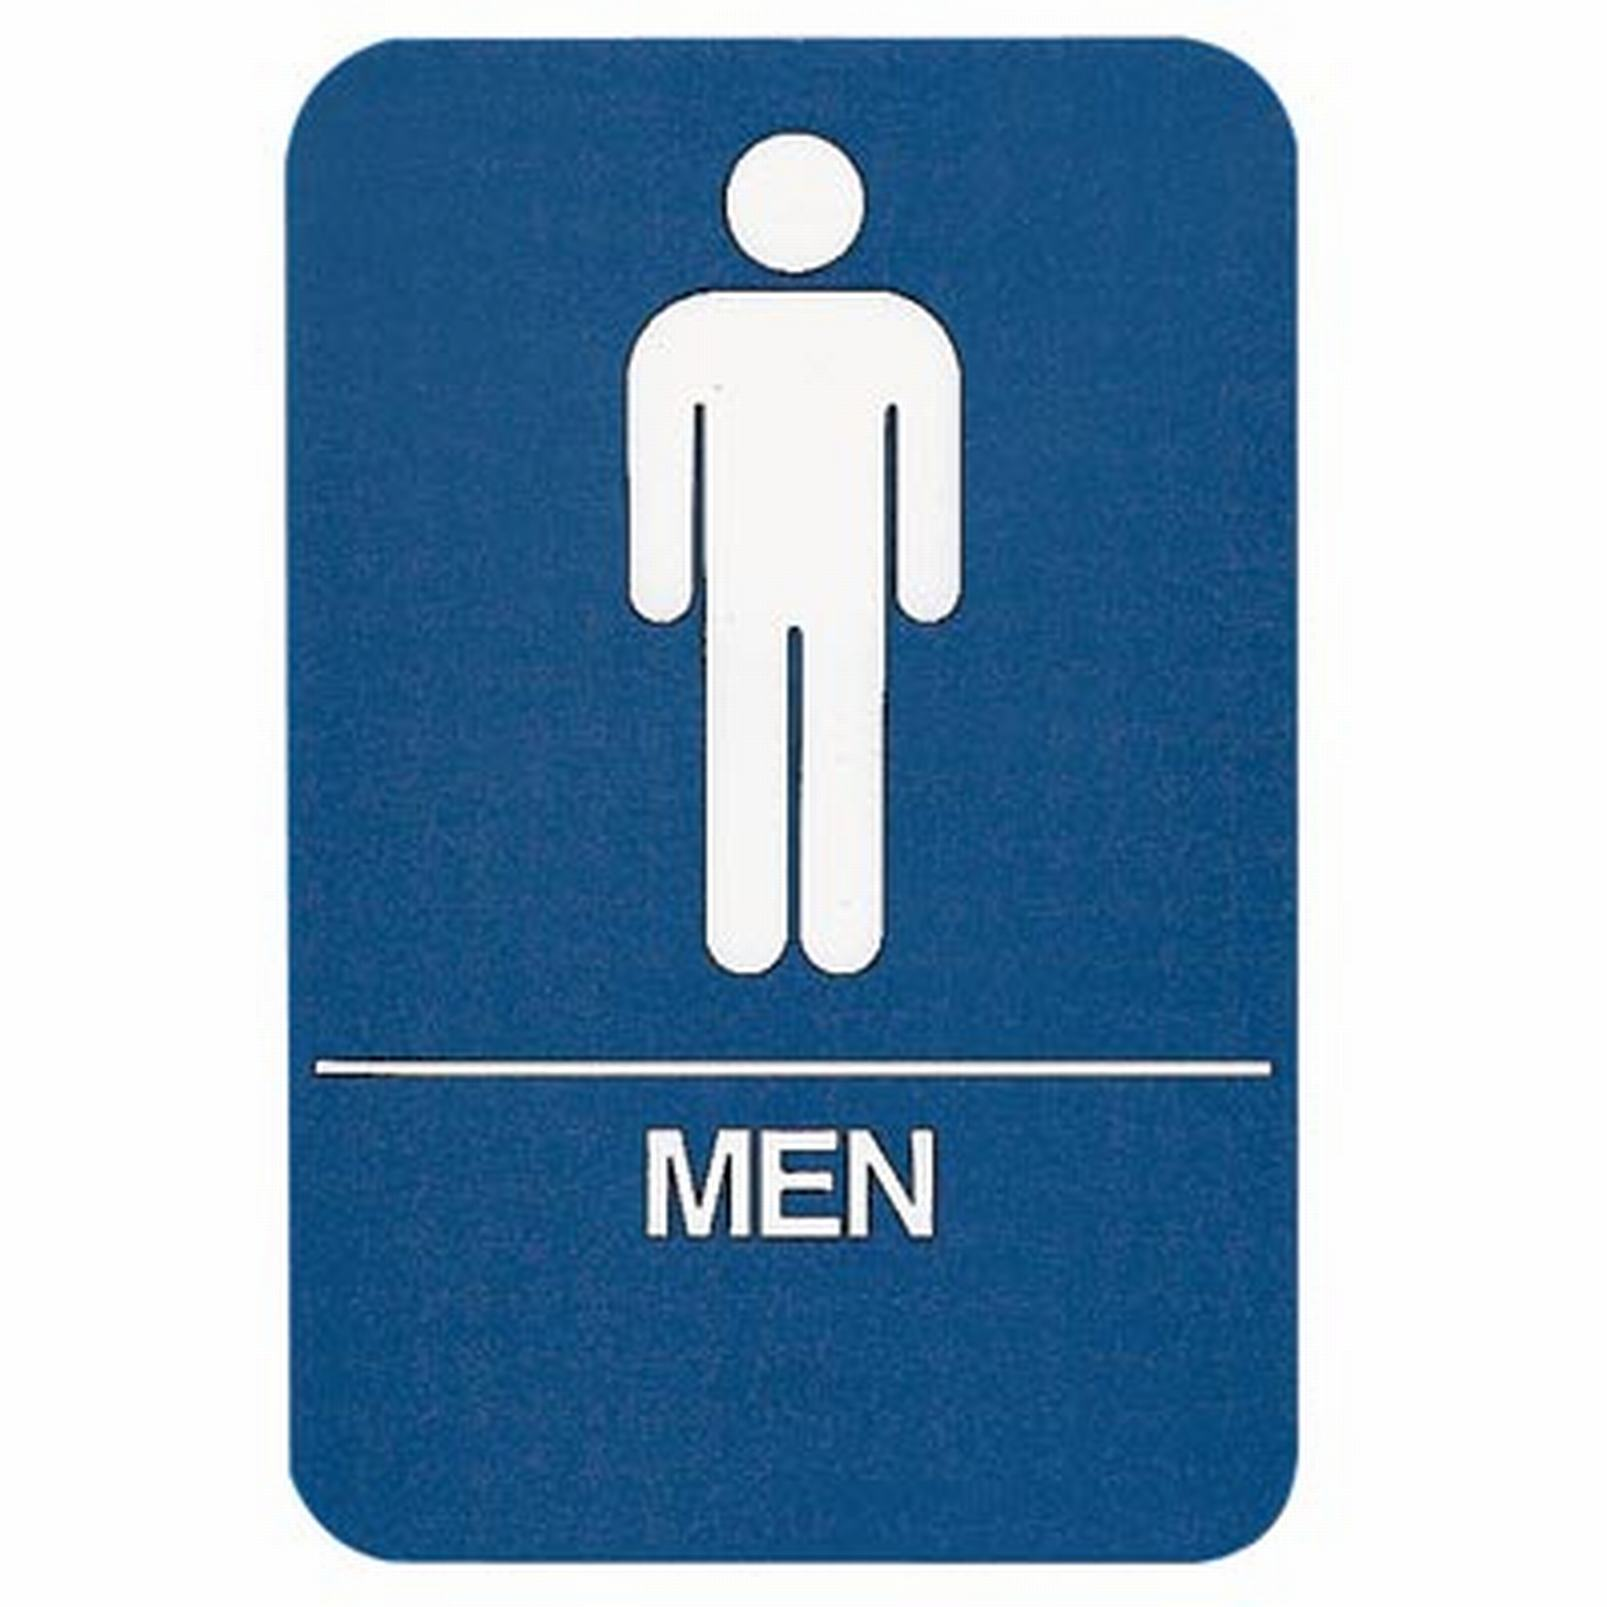 Sign Men Restroom ADA Compliant Educator 39 S Depot